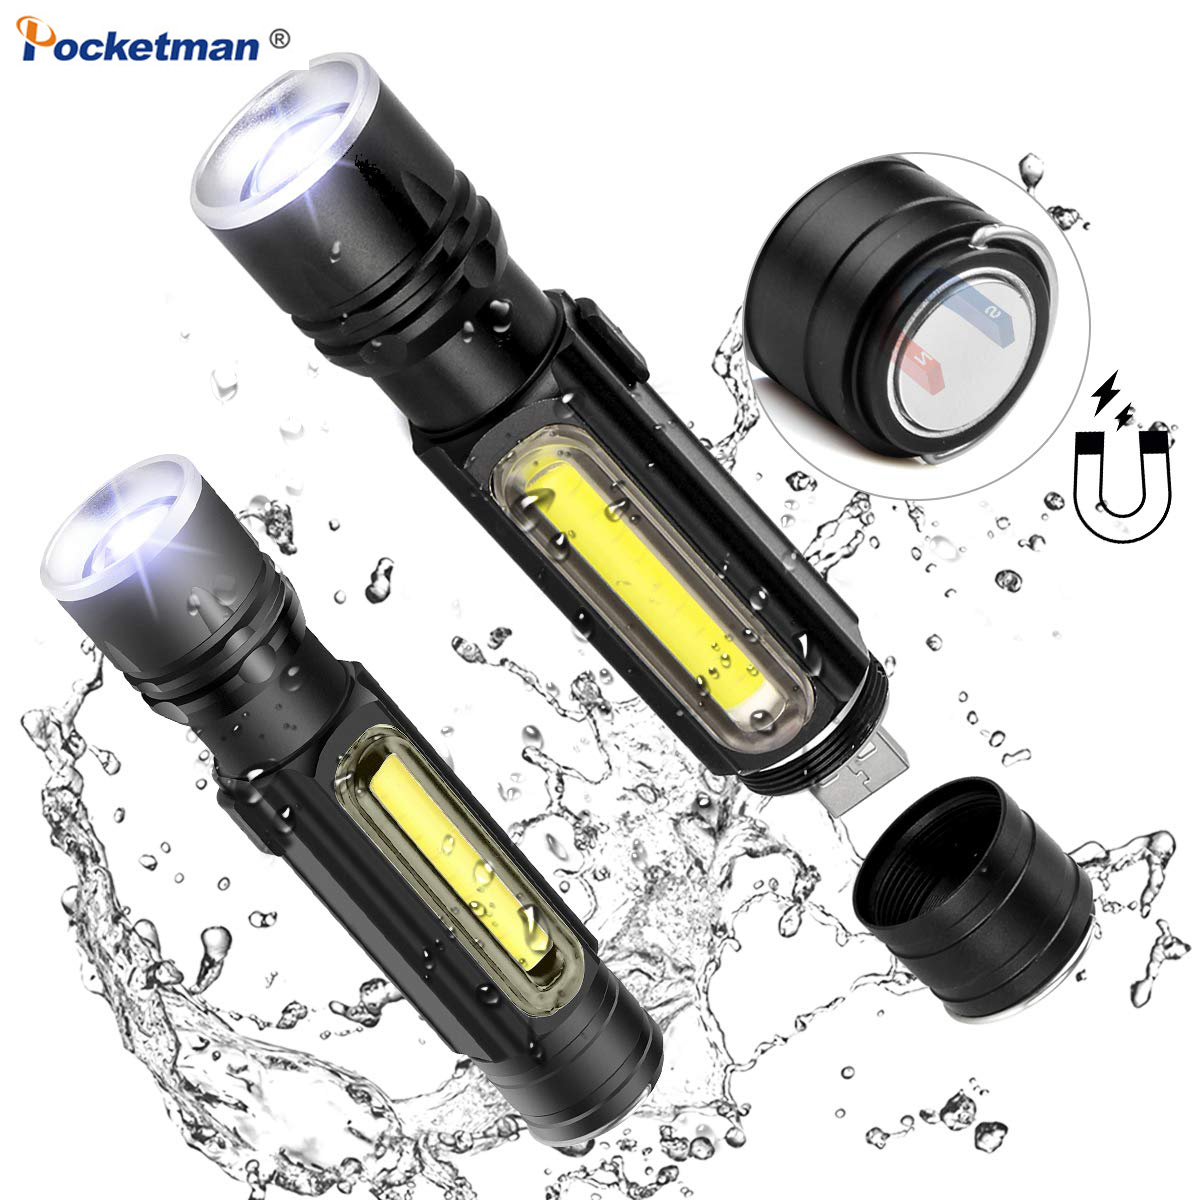 5000LM Portable LED Flashlight USB Rechargeable Battery Powerful T6 Torch Side COB Light Linterna Tail Magnet Work Light